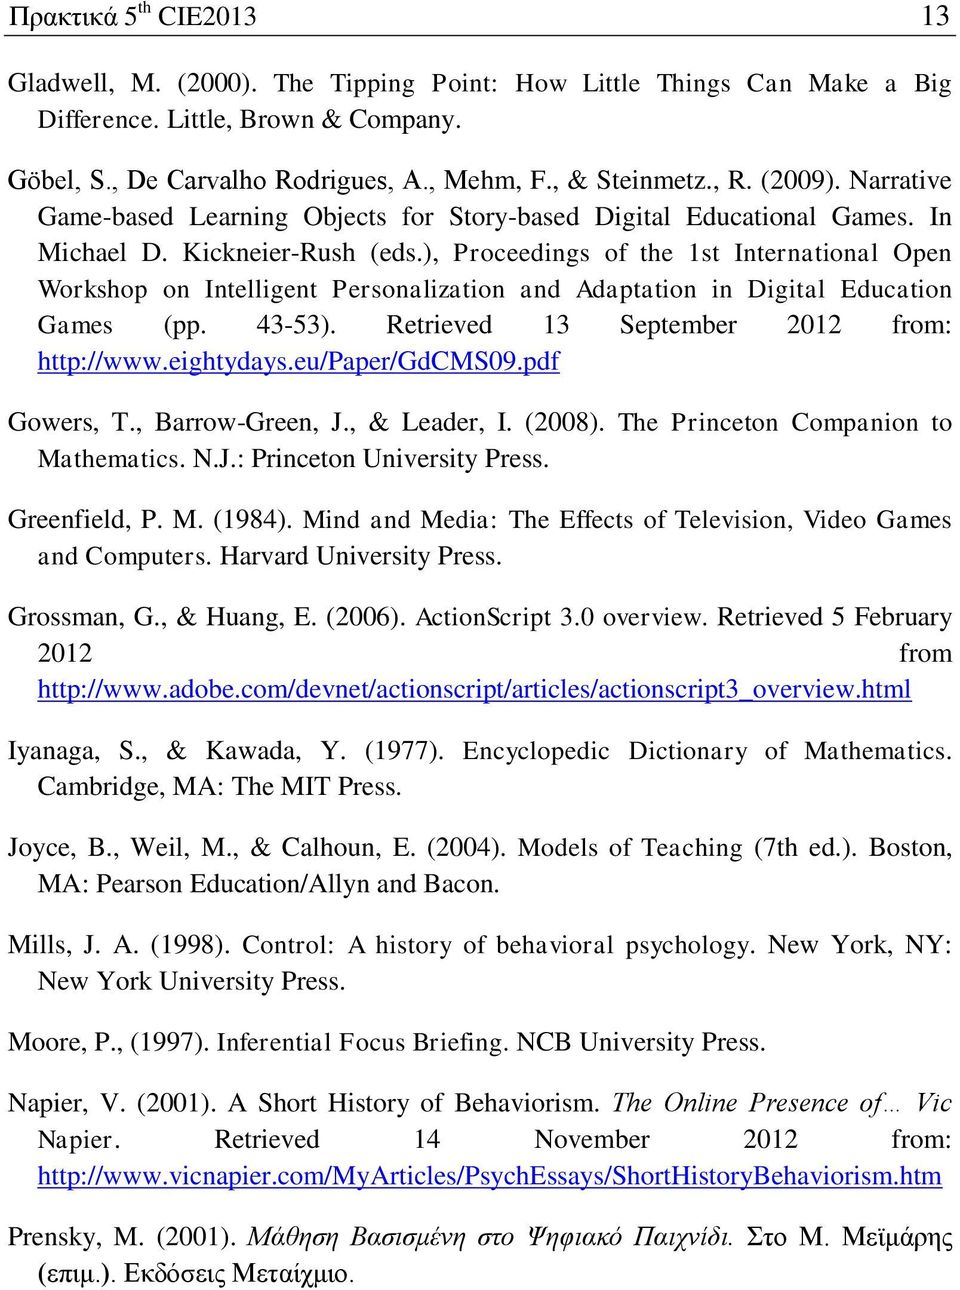 ), Proceedings of the 1st International Open Workshop on Intelligent Personalization and Adaptation in Digital Education Games (pp. 43-53). Retrieved 13 September 2012 from: http://www.eightydays.